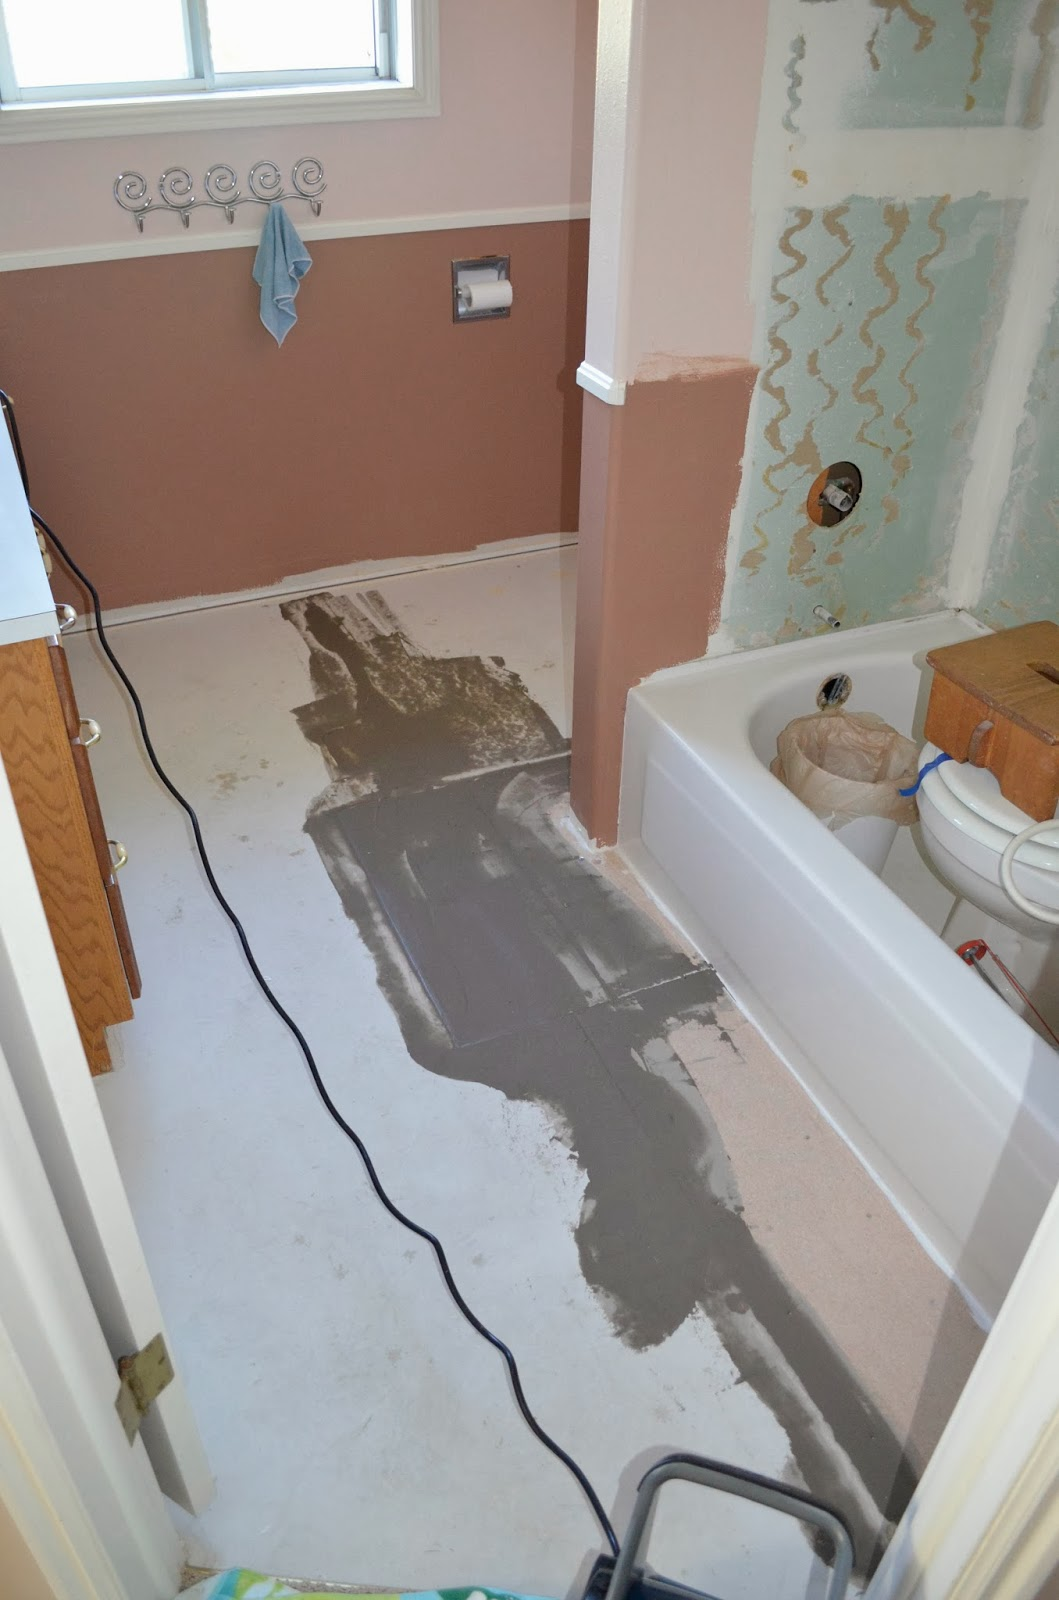 One Thing Leads To Another Mostly DIY Bathroom Repair And Remodel - How to repair bathroom floor tile